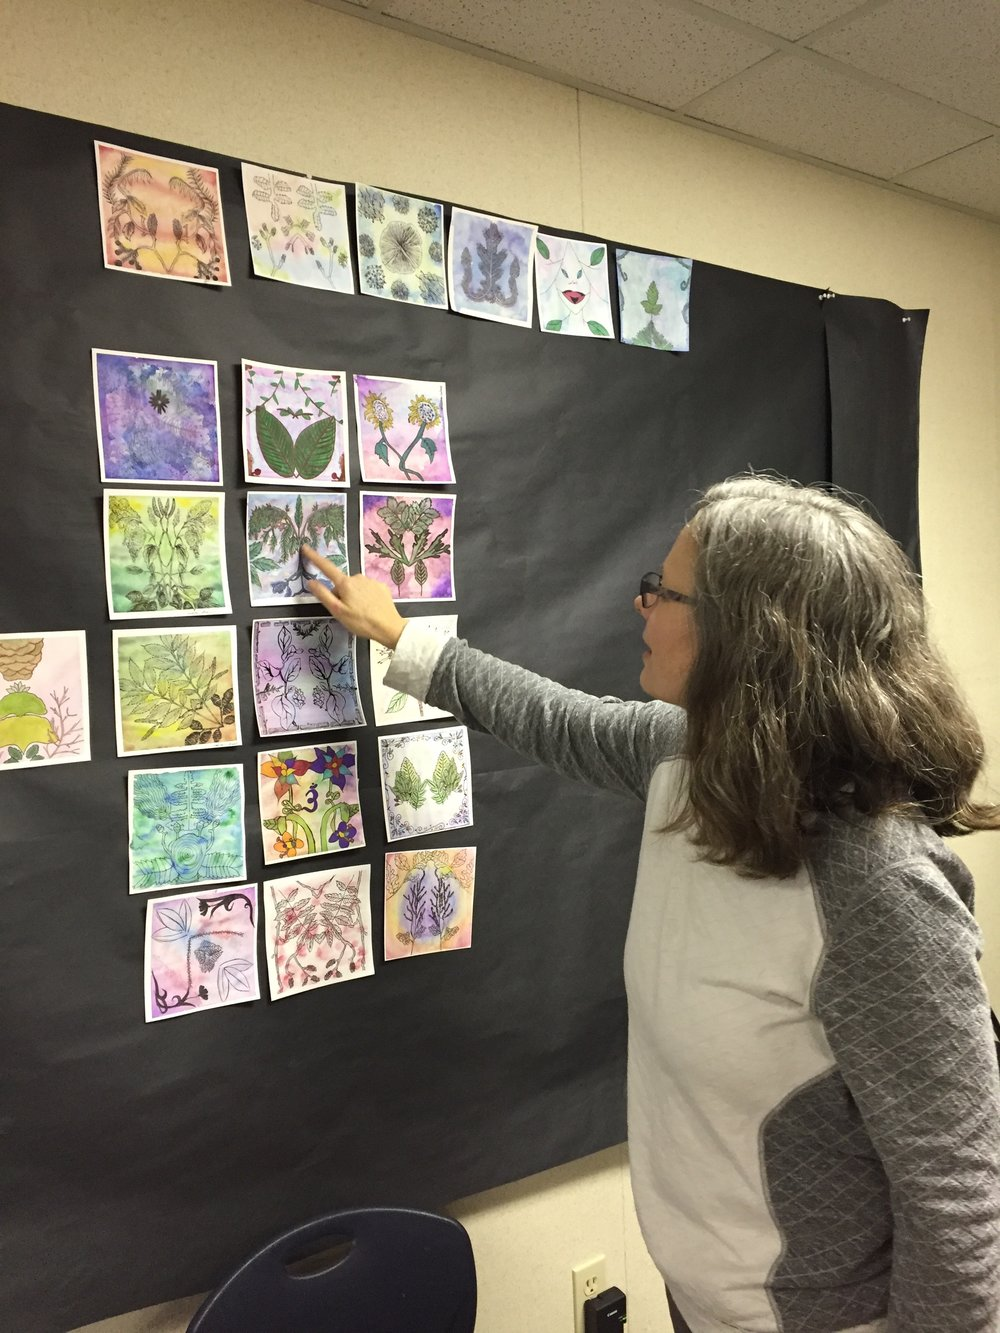 Mary Mann, showing off the paintings based on foliage found during one of the walks in Point Defiance.